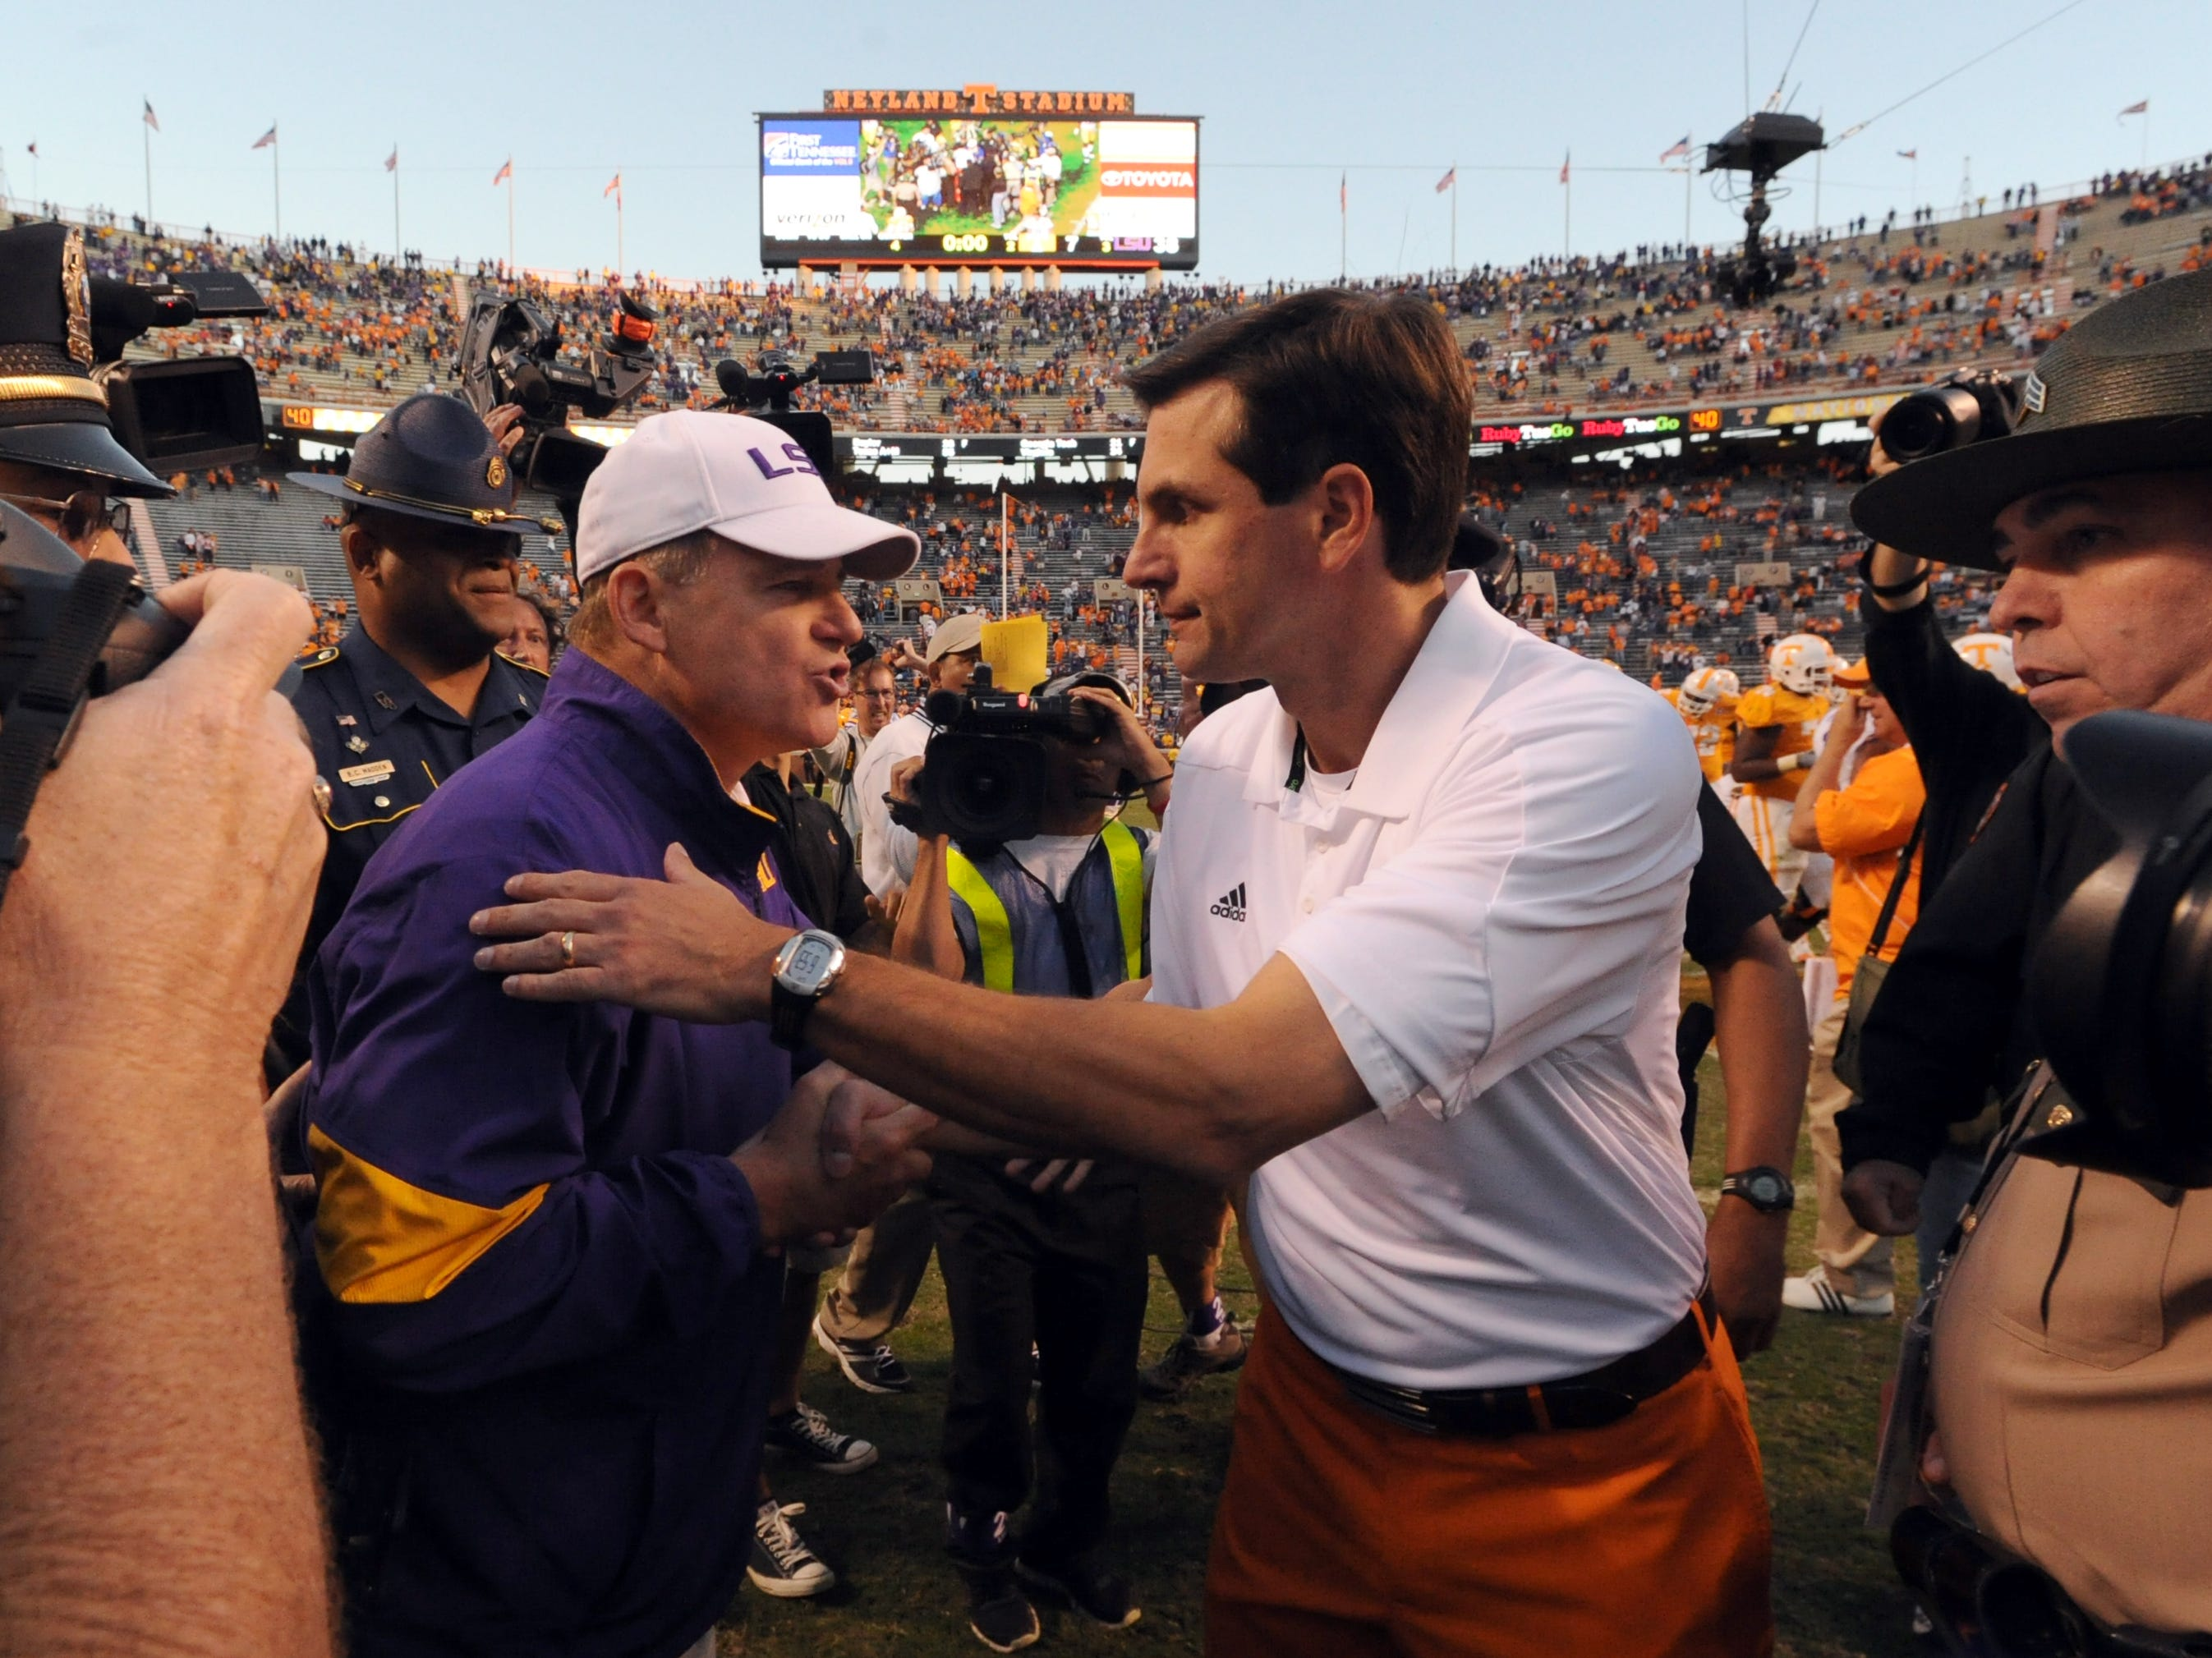 Tennessee head coach Derek Dooley, right, shakes hands with LSU head coach Les Miles after the Vols loss to the Tigers at Neyland Stadium Saturday, Oct. 15, 2011.  LSU won the game 38-7 over Tennessee.